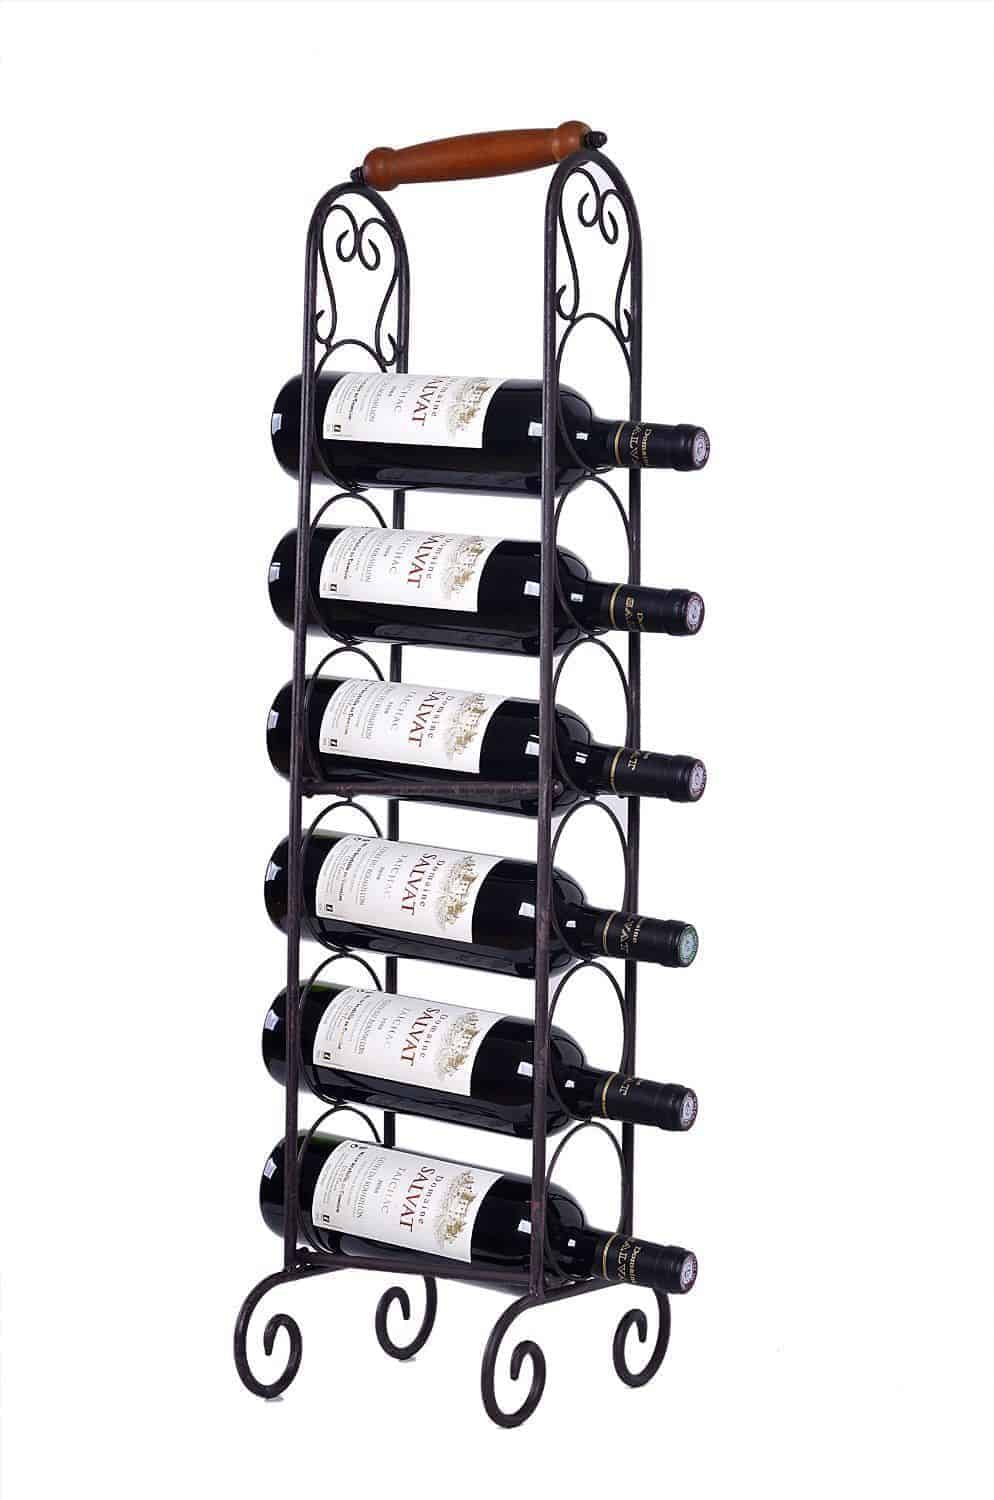 welland metal wine rack stand - Metal Wine Rack